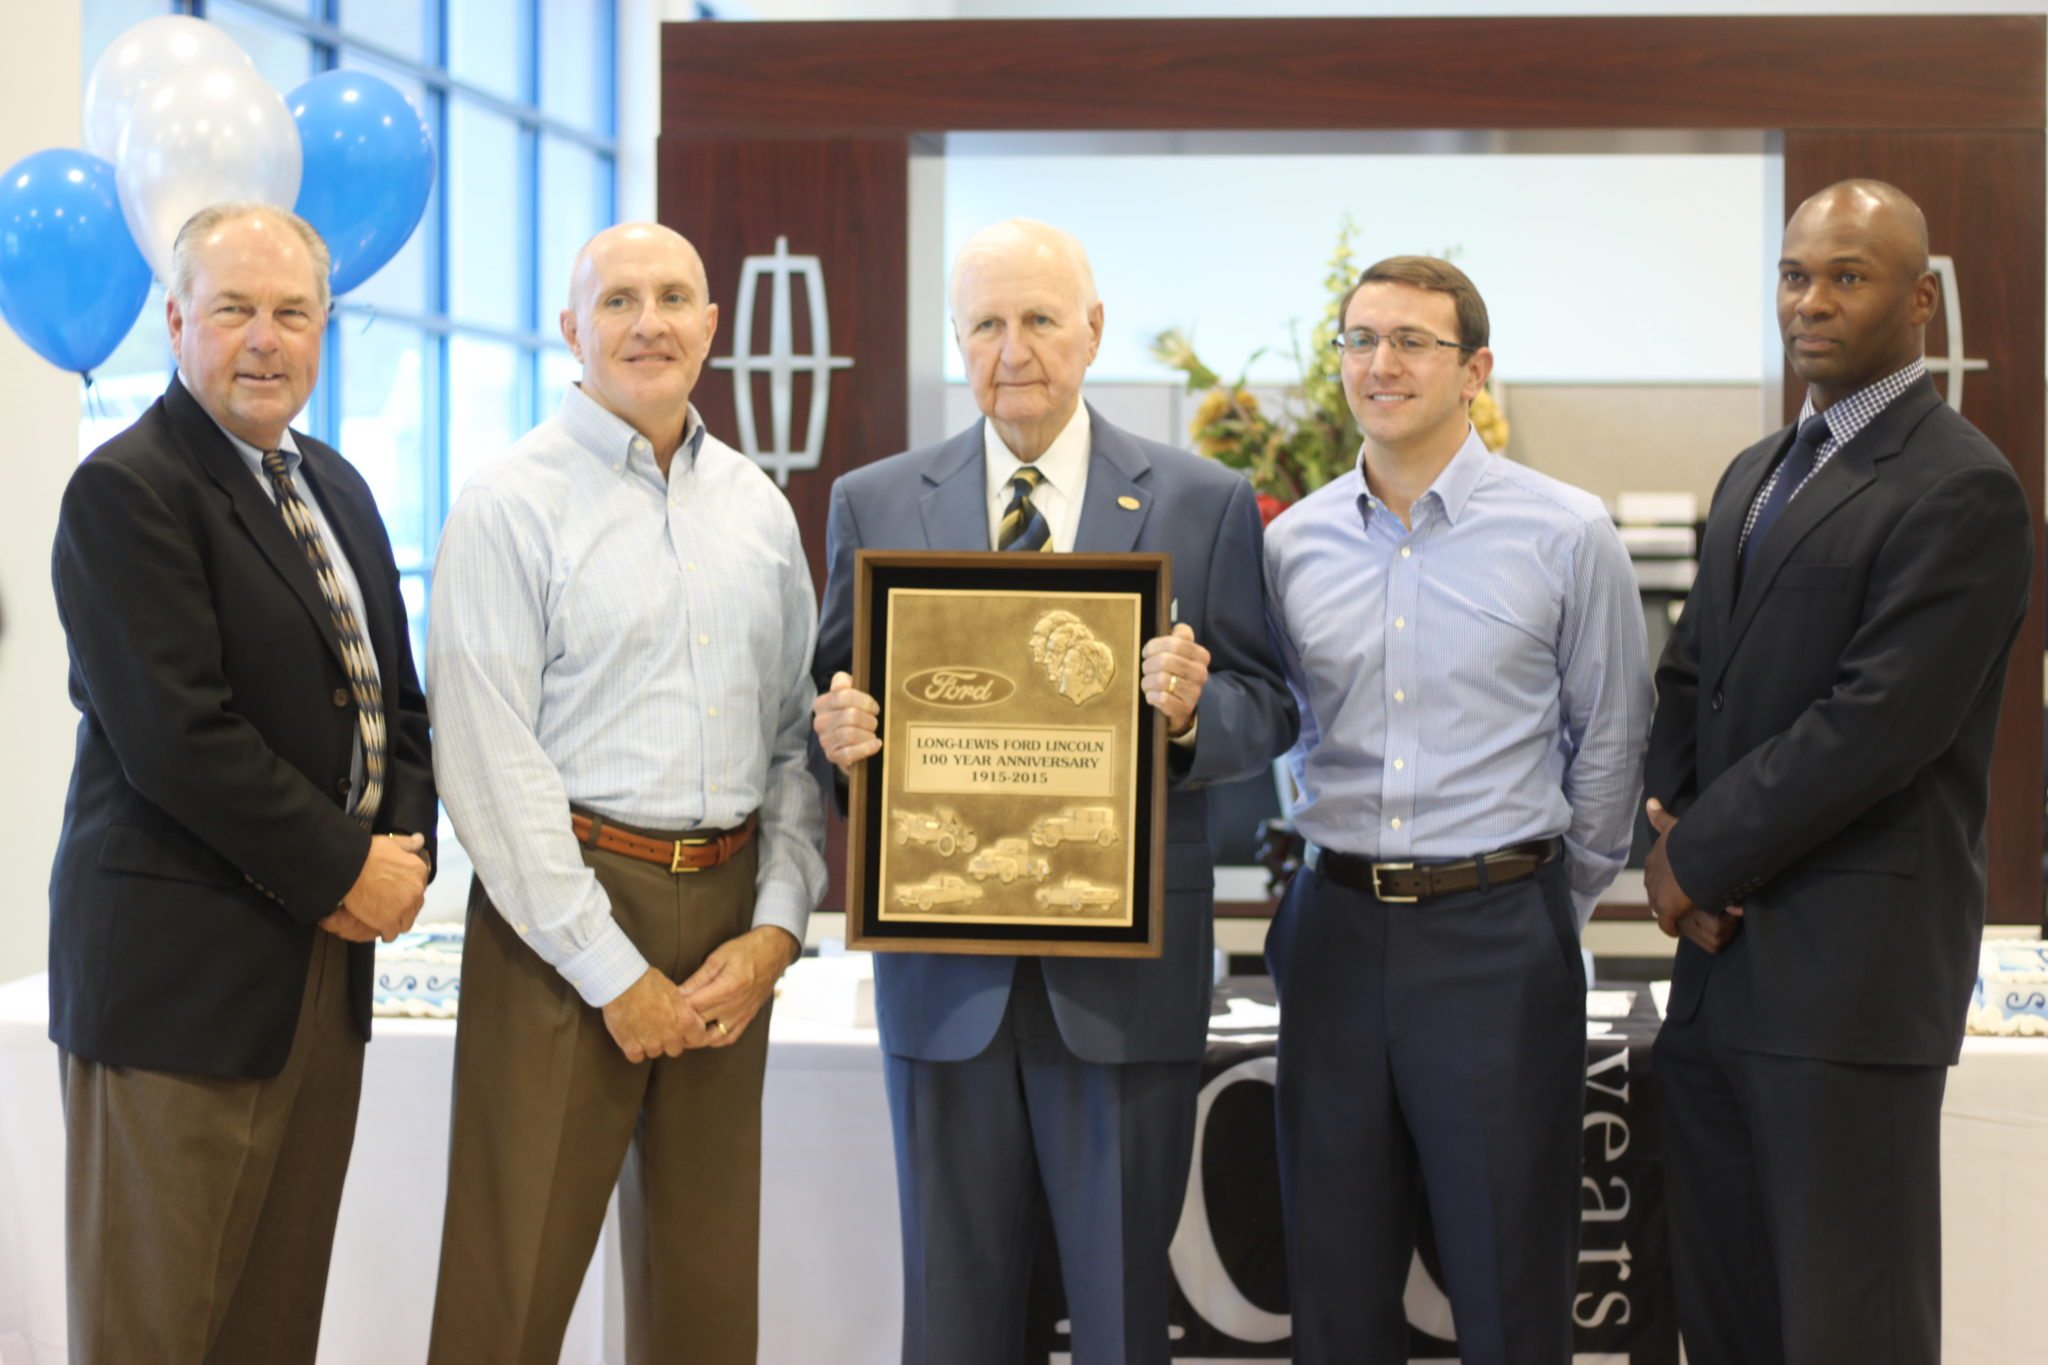 Long Lewis Receives Award Celebrating Anniversary Over The